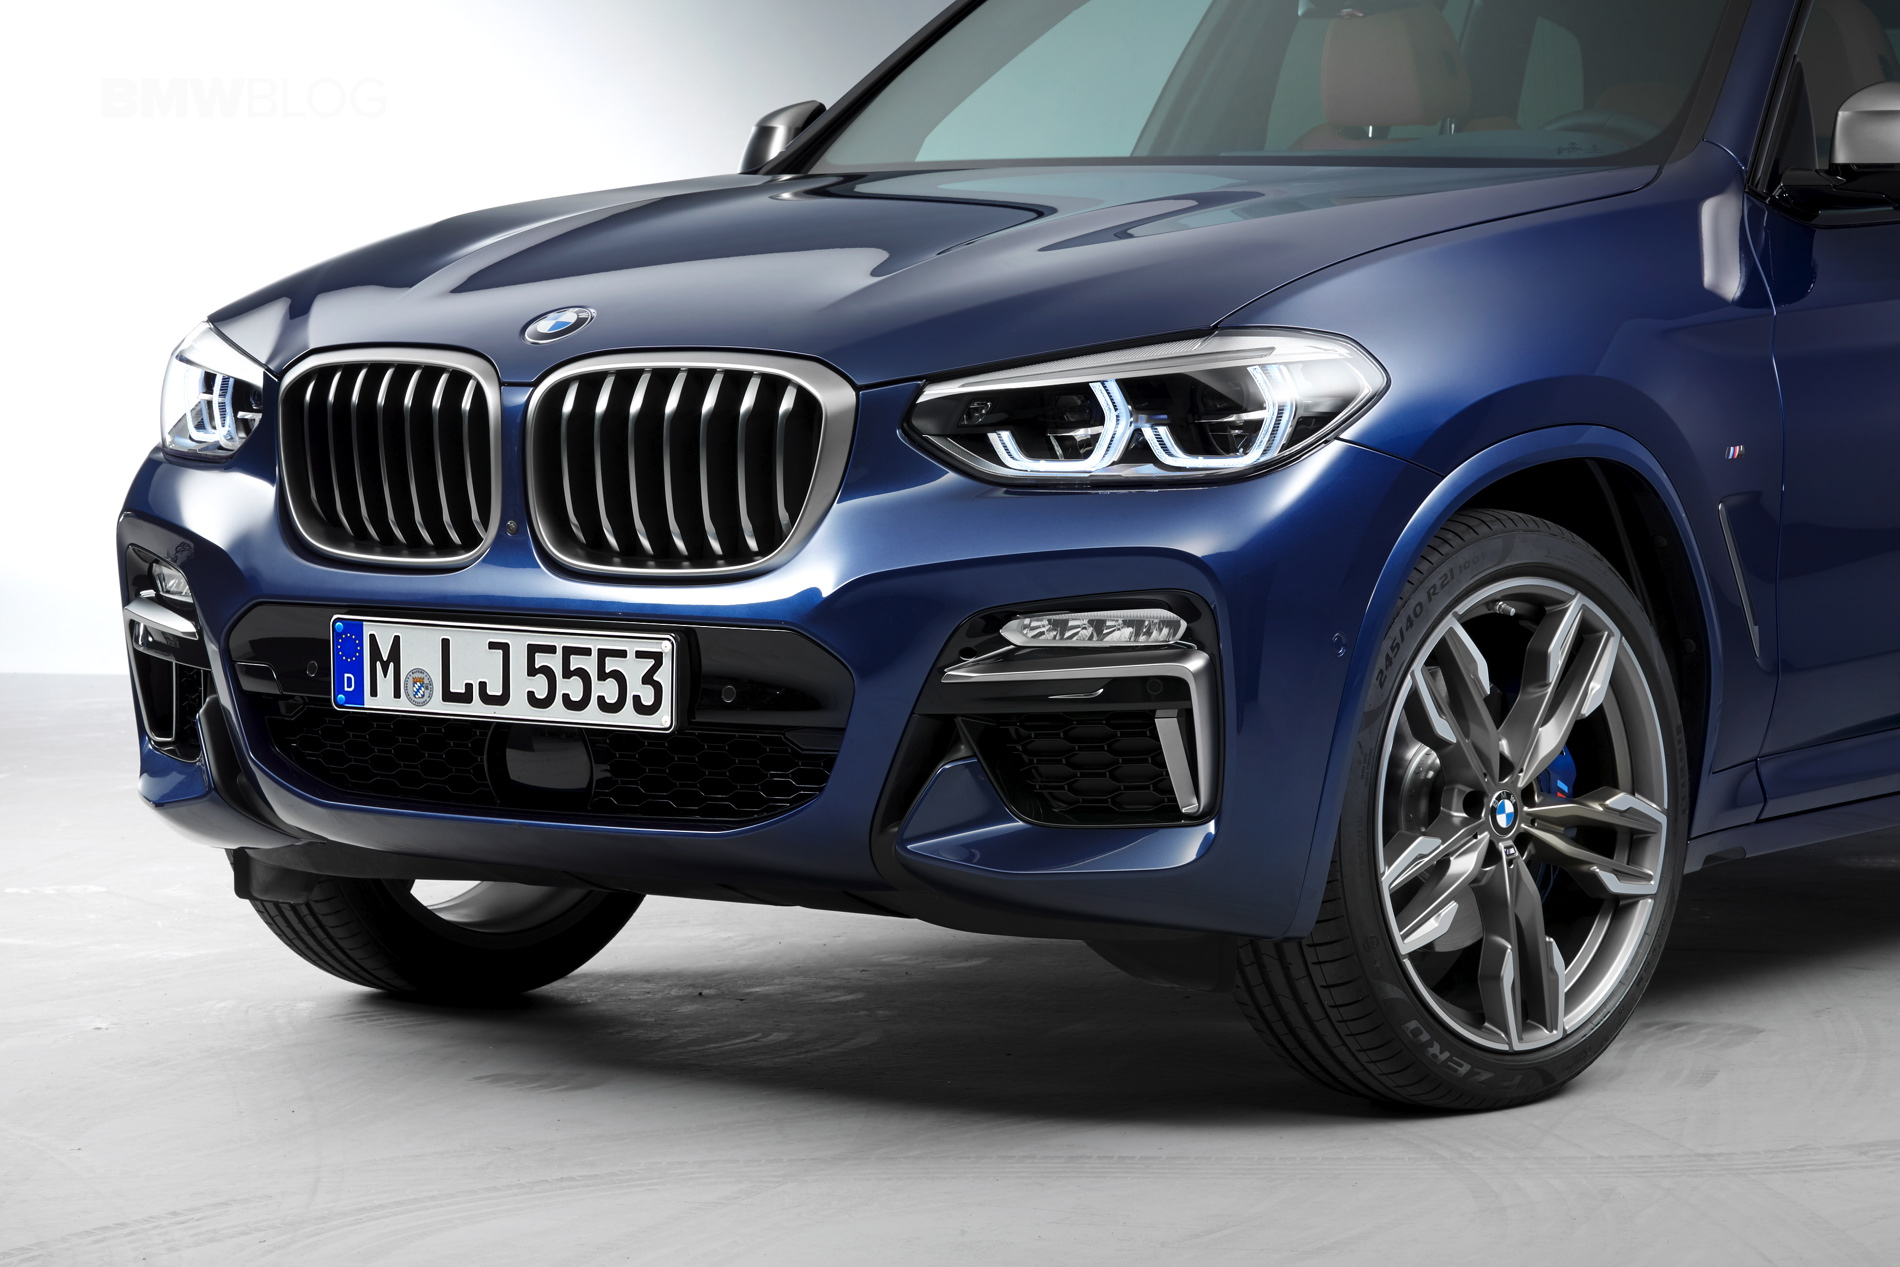 2018 Bmw X3 Price >> 2018 Bmw X3 Price Starts At 47 000 Euros For X3 Xdrive20d